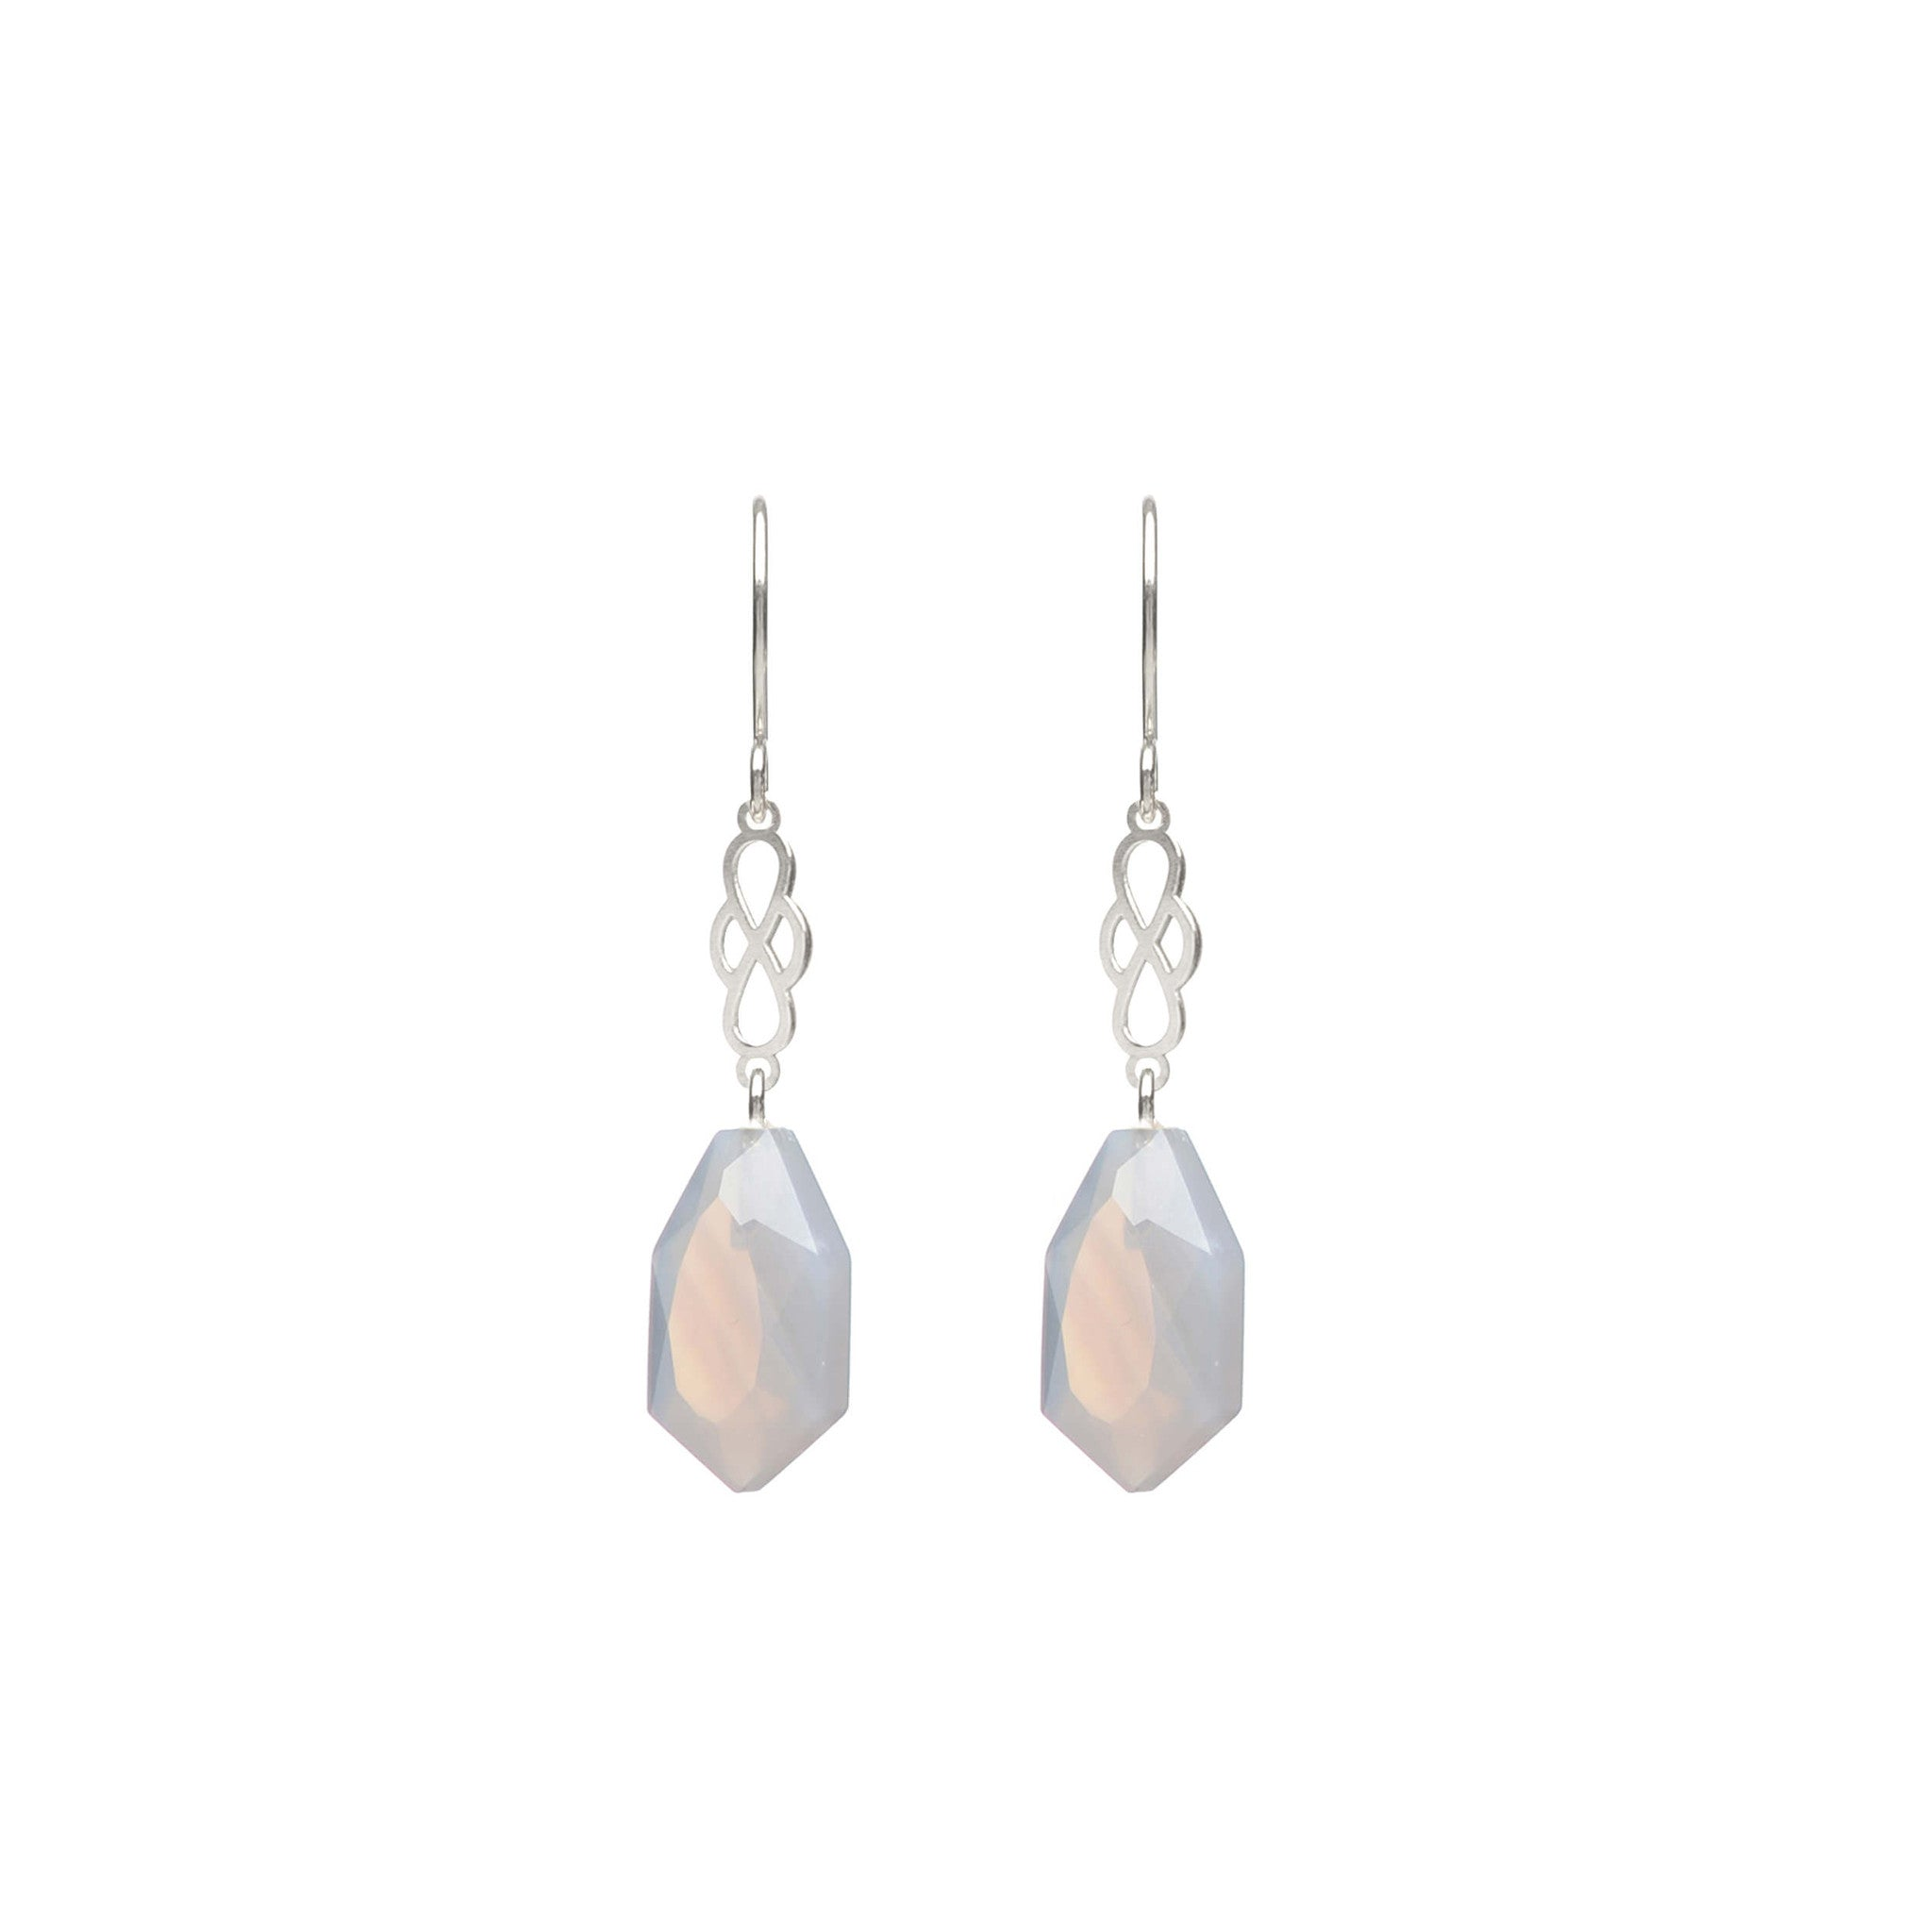 Sterling Silver hook earrings with grey Agate